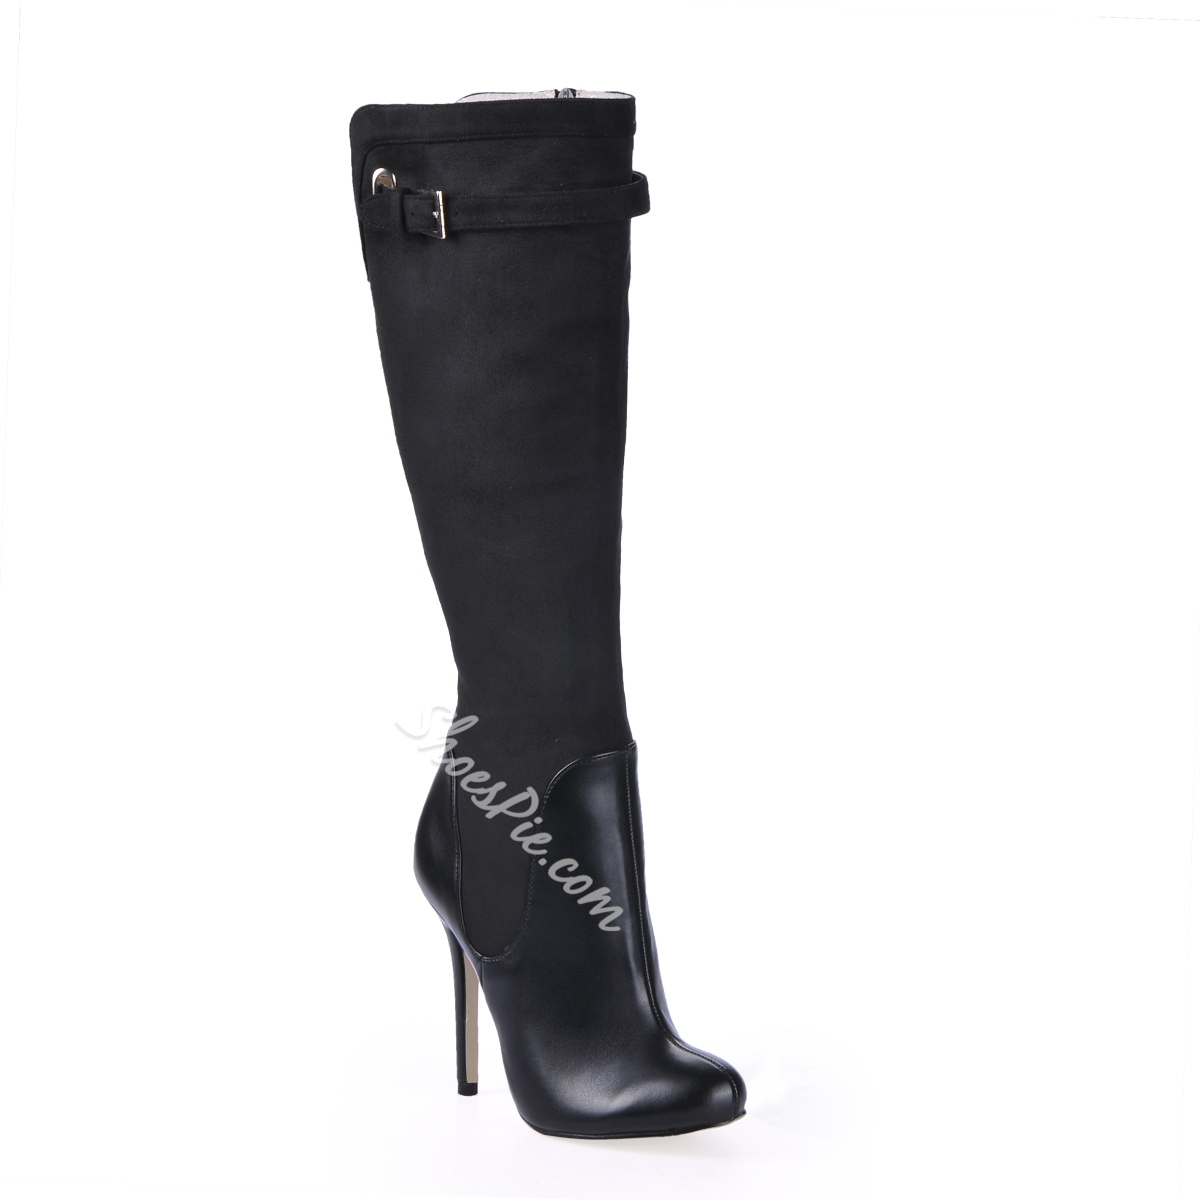 Charming Black Stiletto Heels Knee High Boots